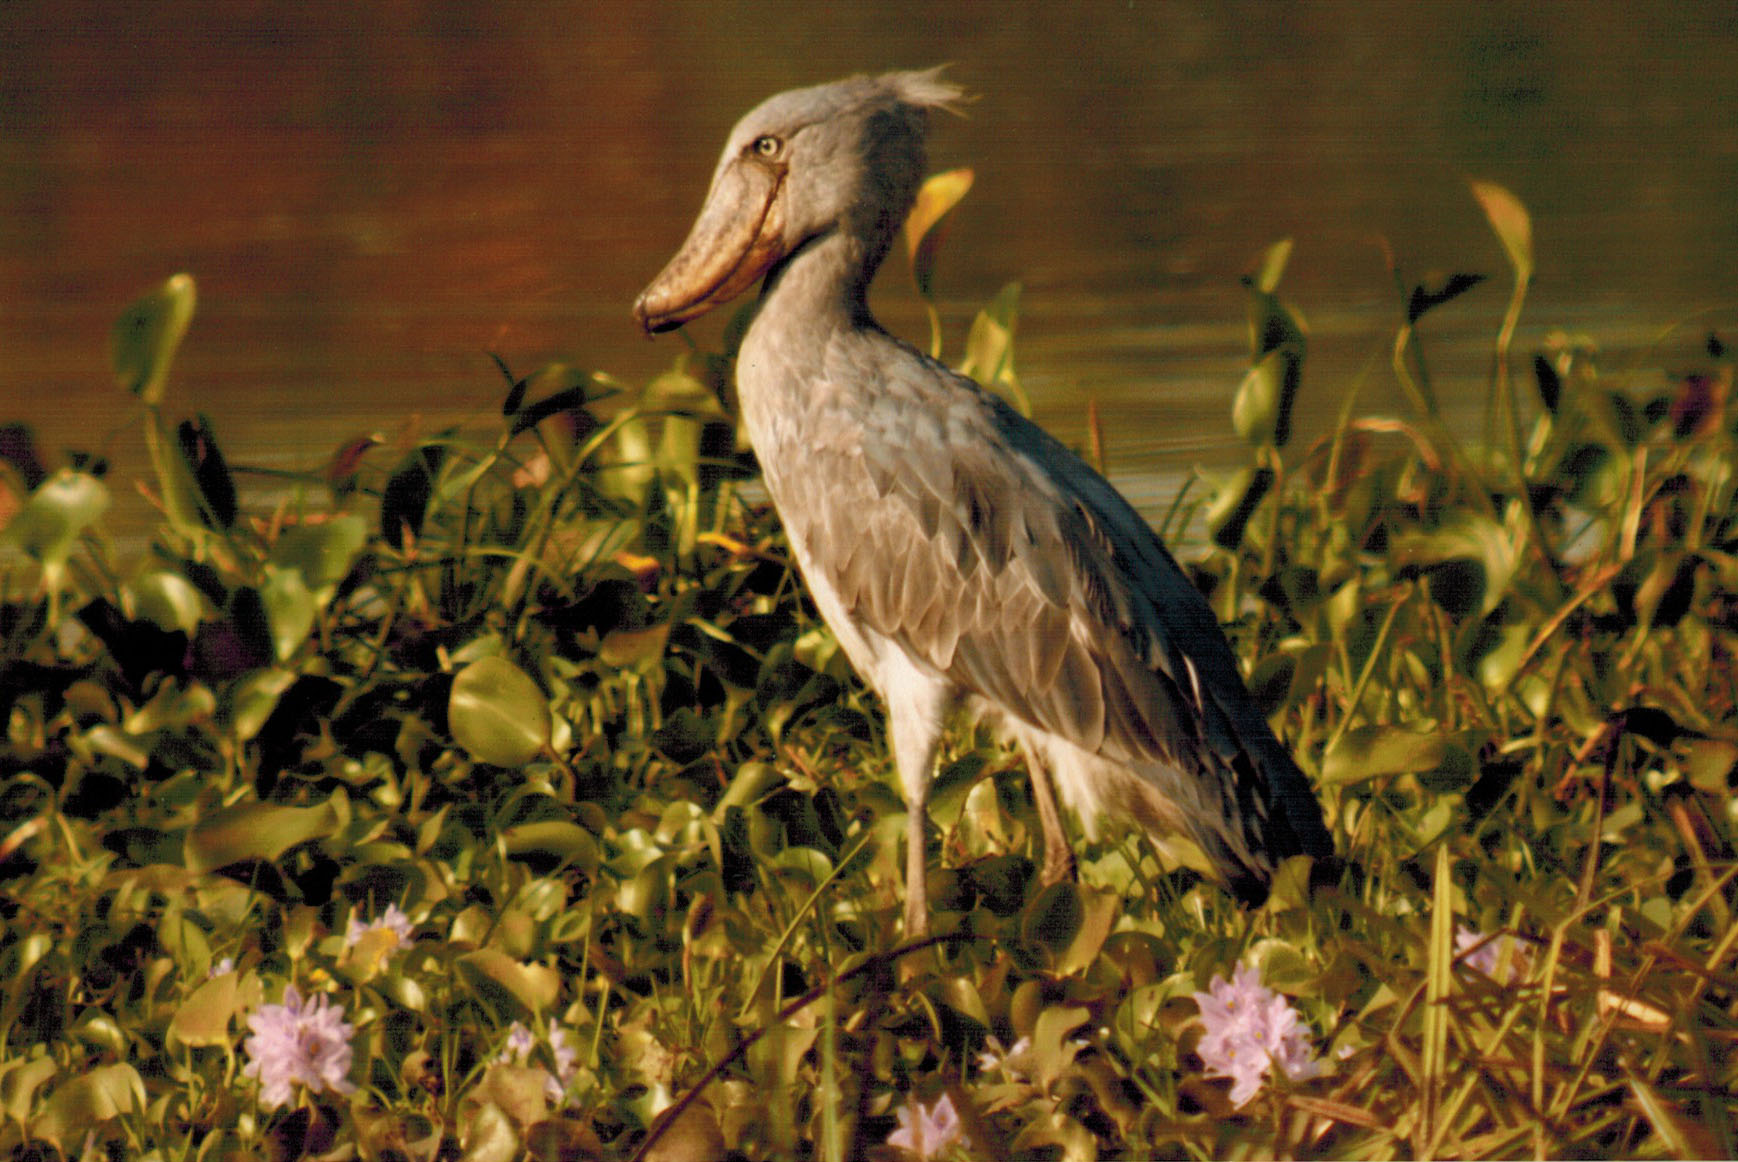 Shoebill in Uganda's Murchison Falls National Park